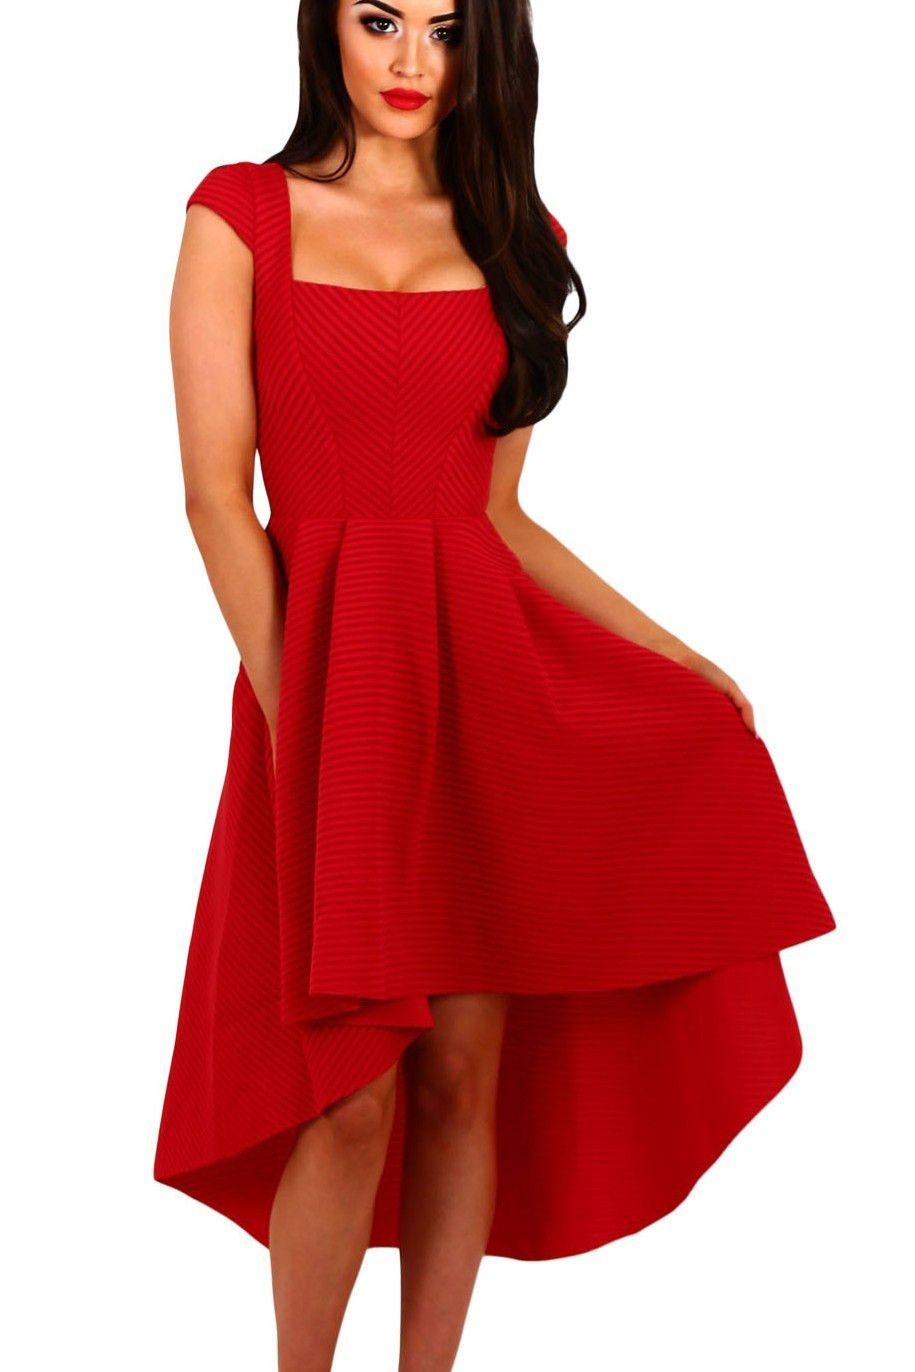 fb917aa054f Robe Rouge Swing Mi-Longue Courte Devant Longue Derriere Col Carre Raye Pas  Cher www.modebuy.com  Modebuy  Modebuy  Rouge  robes  me  style